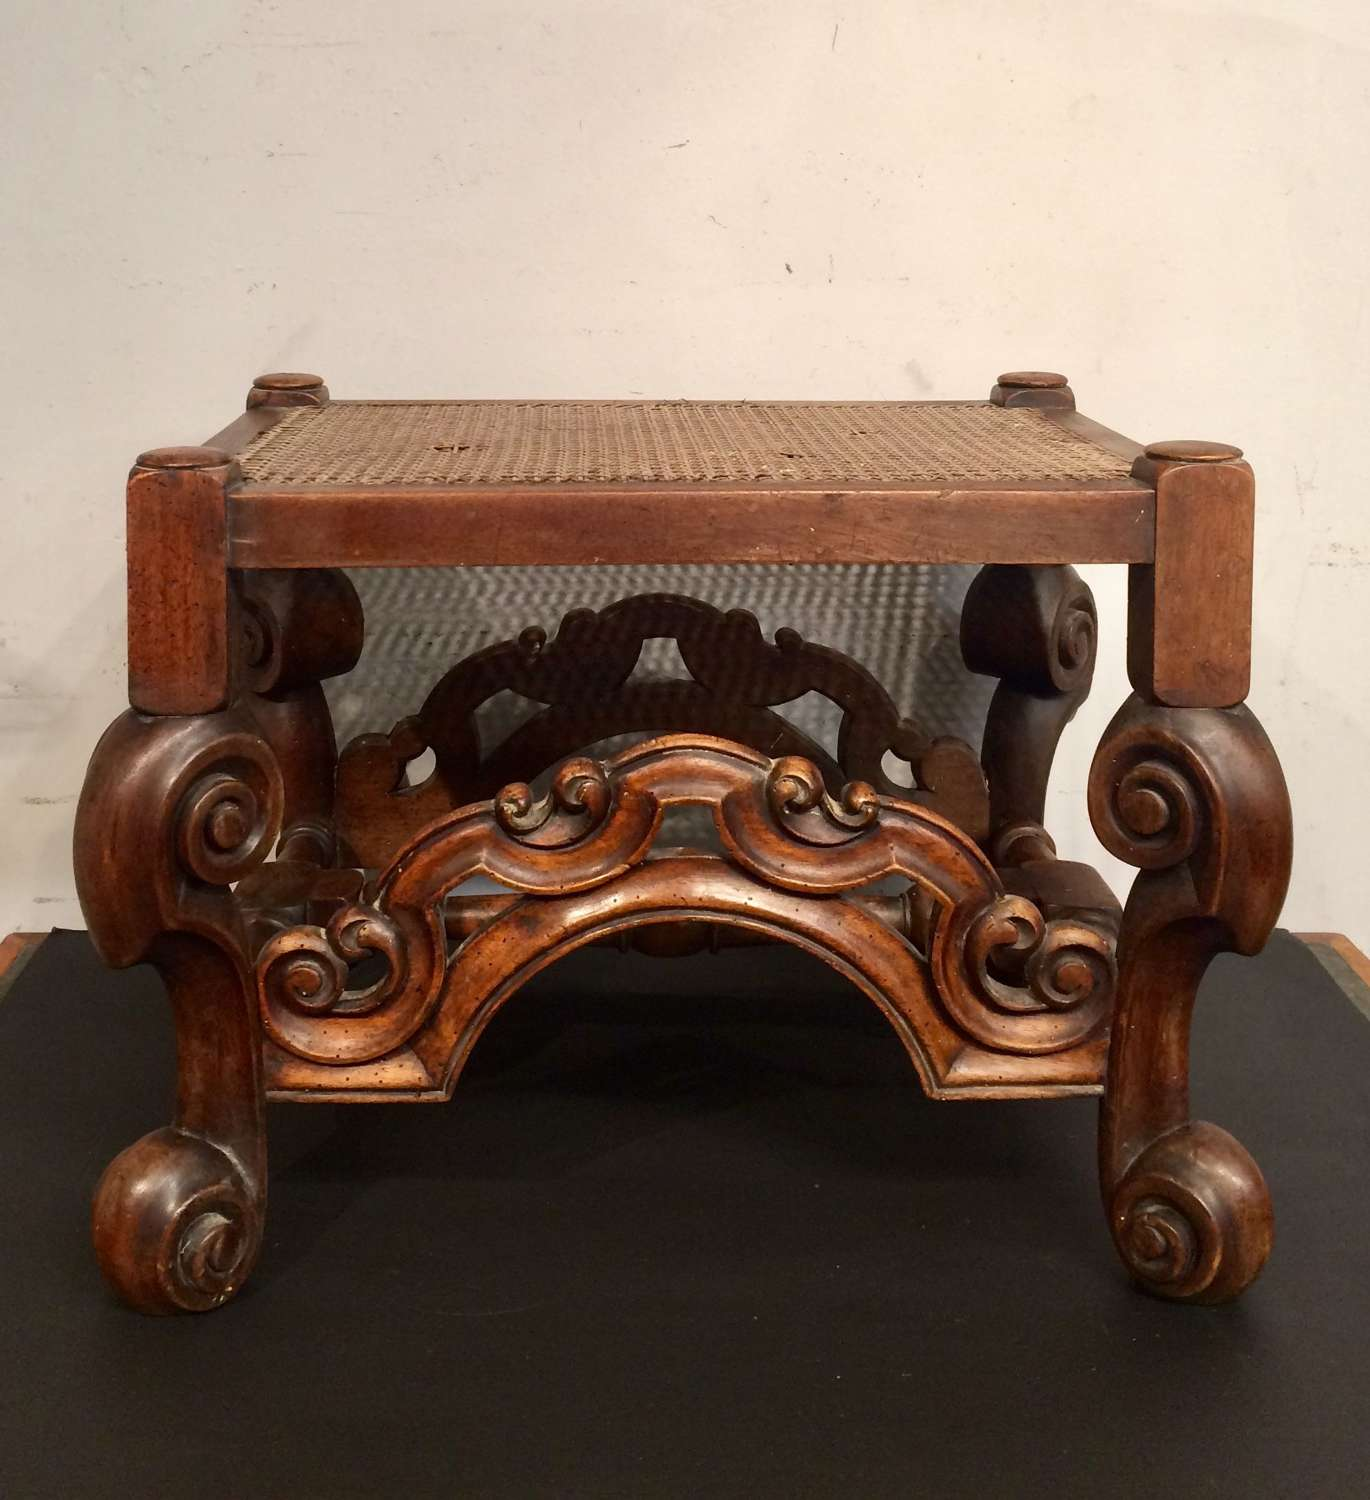 19th century antique Carolean style walnut stool.